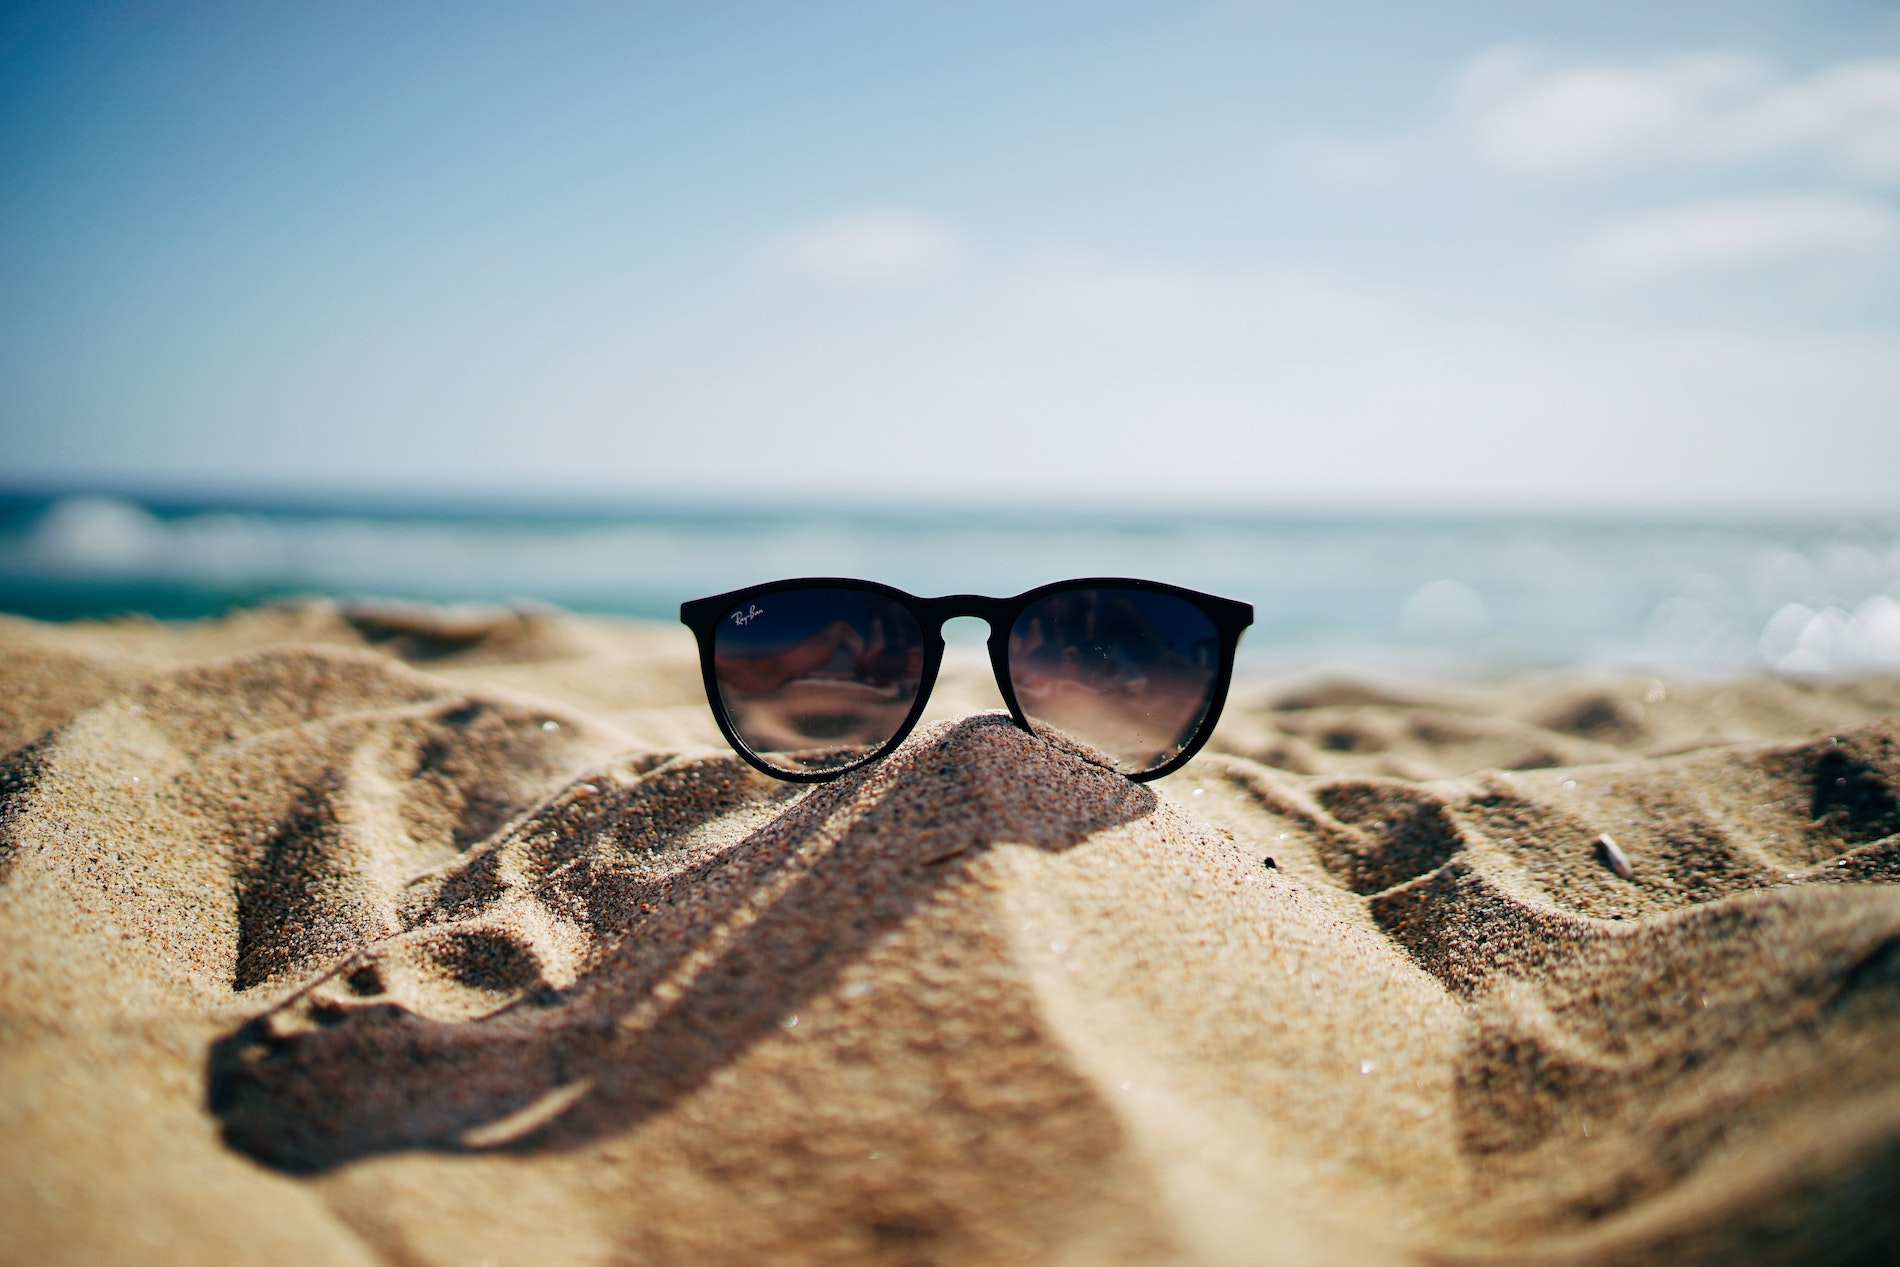 Photo of sunglasses at the beach to illustrated How to Stay Engaged During the Summer.